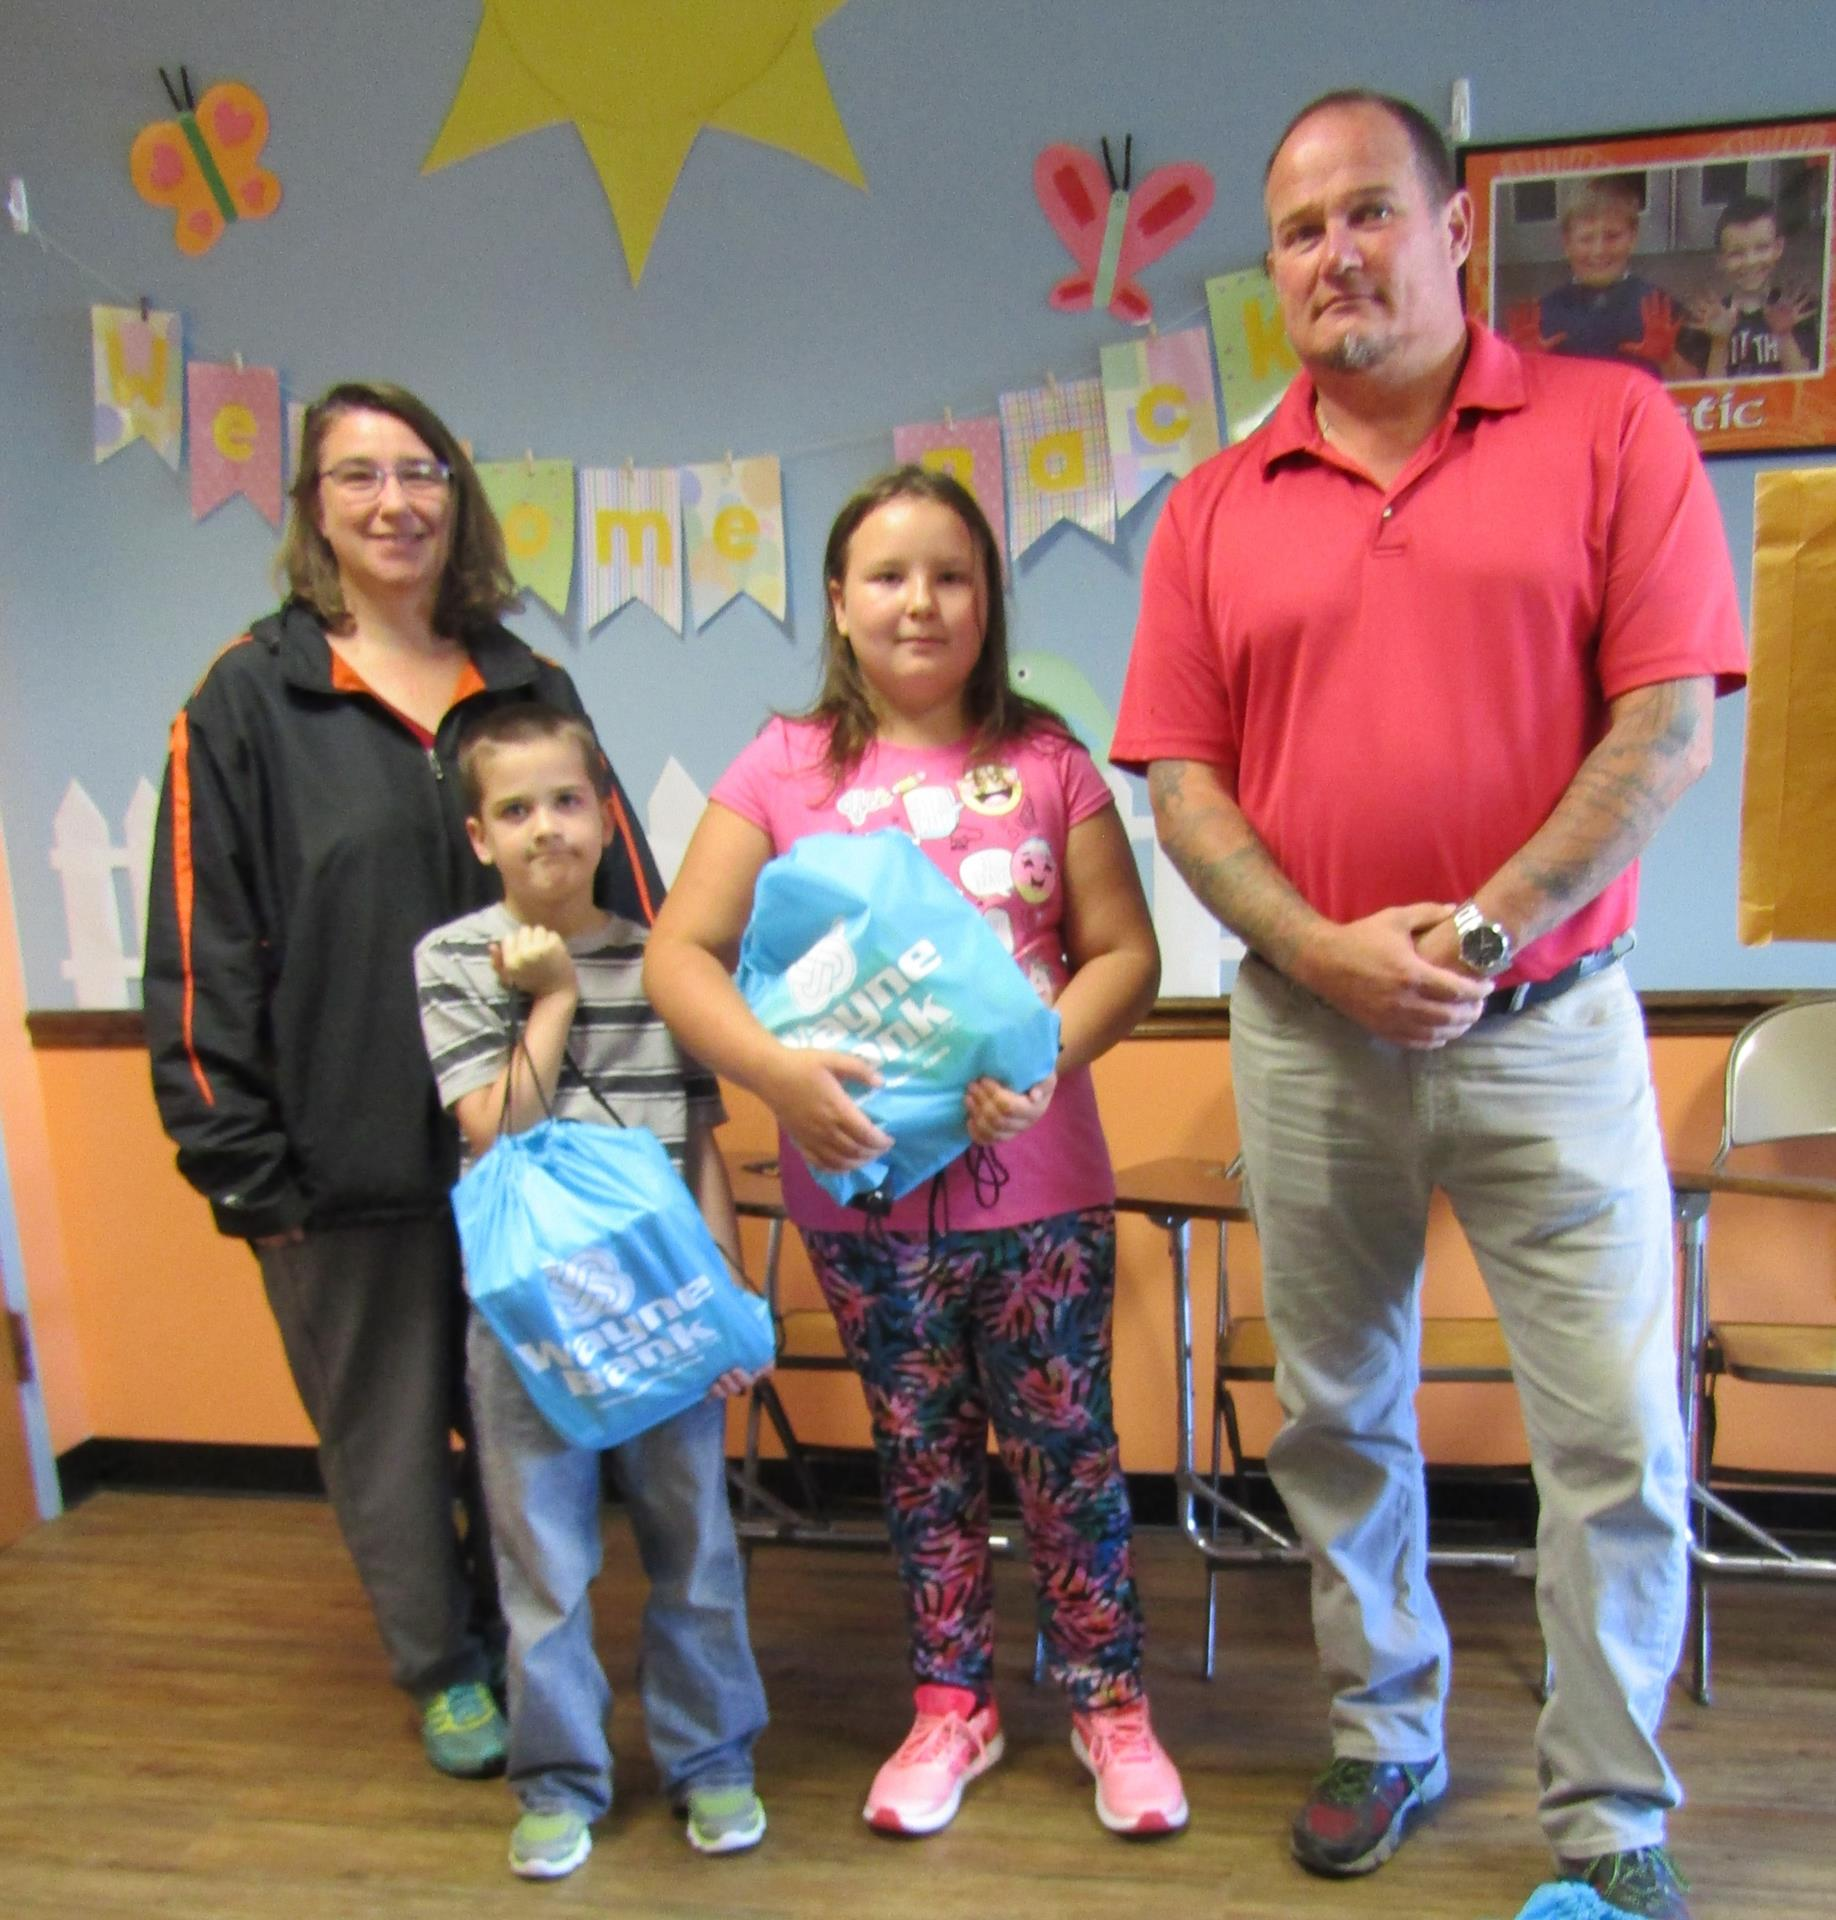 Wayne bank delivers donations